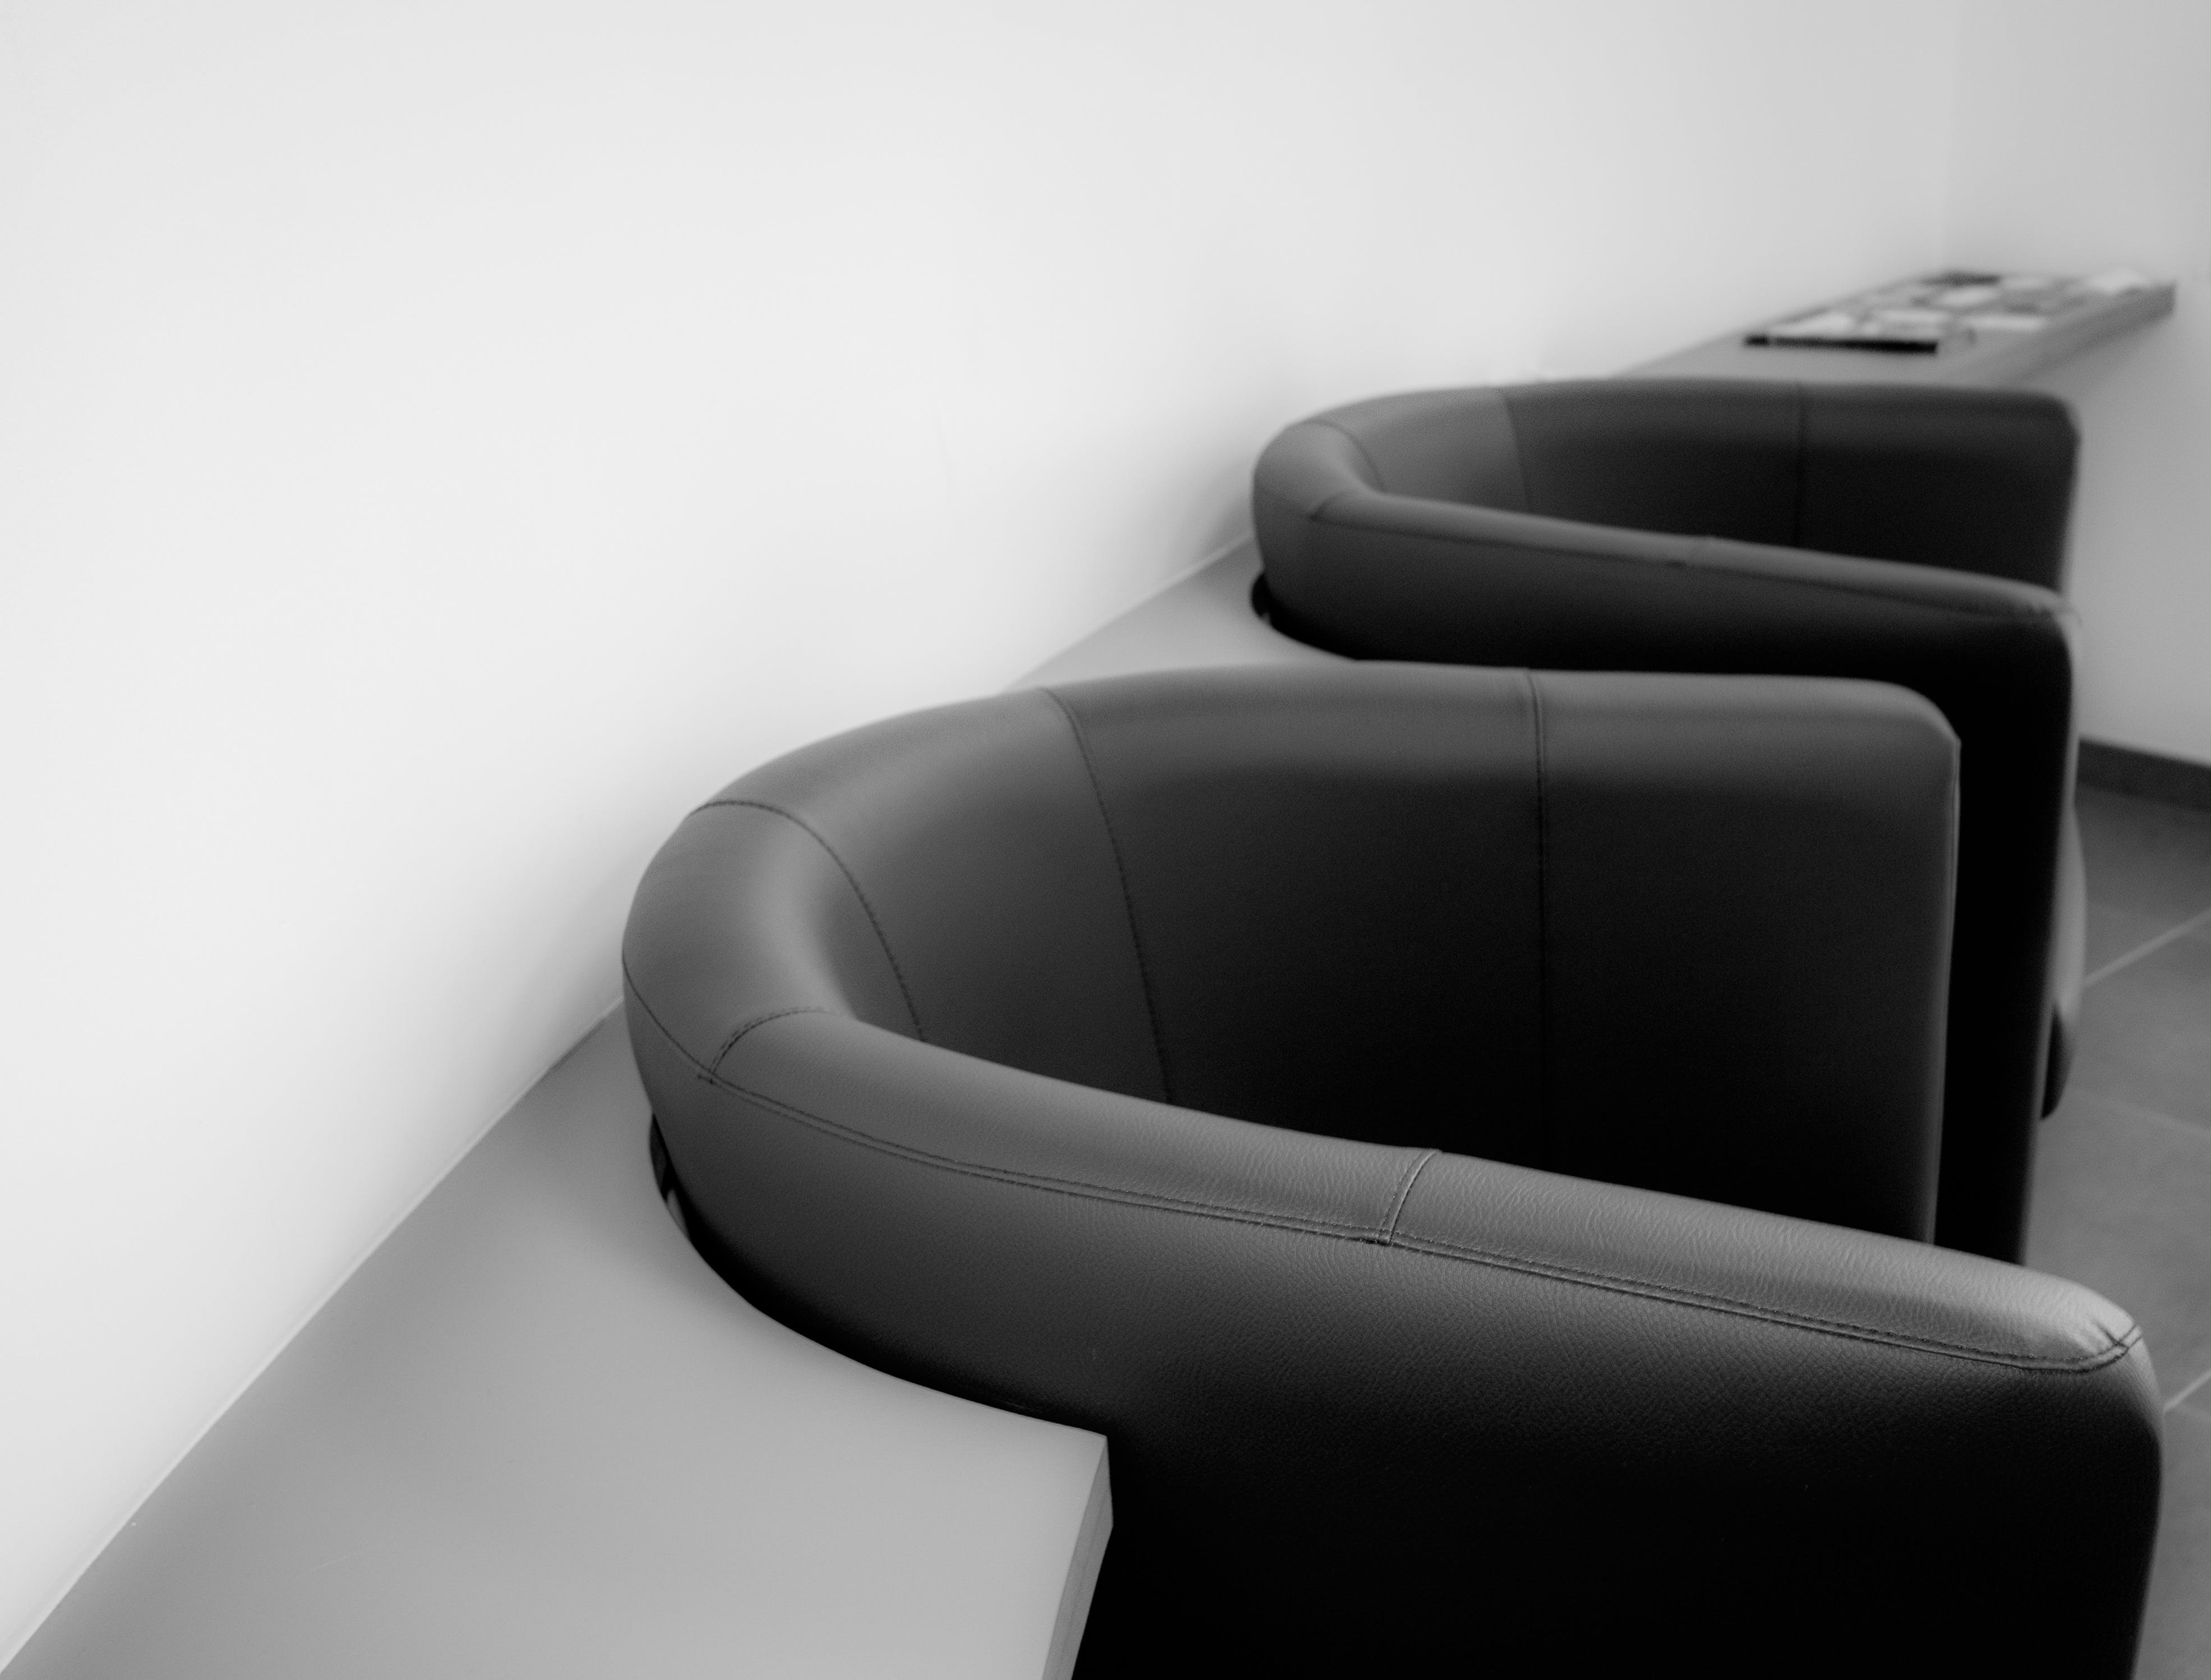 armchairs, black-and-white, chairs